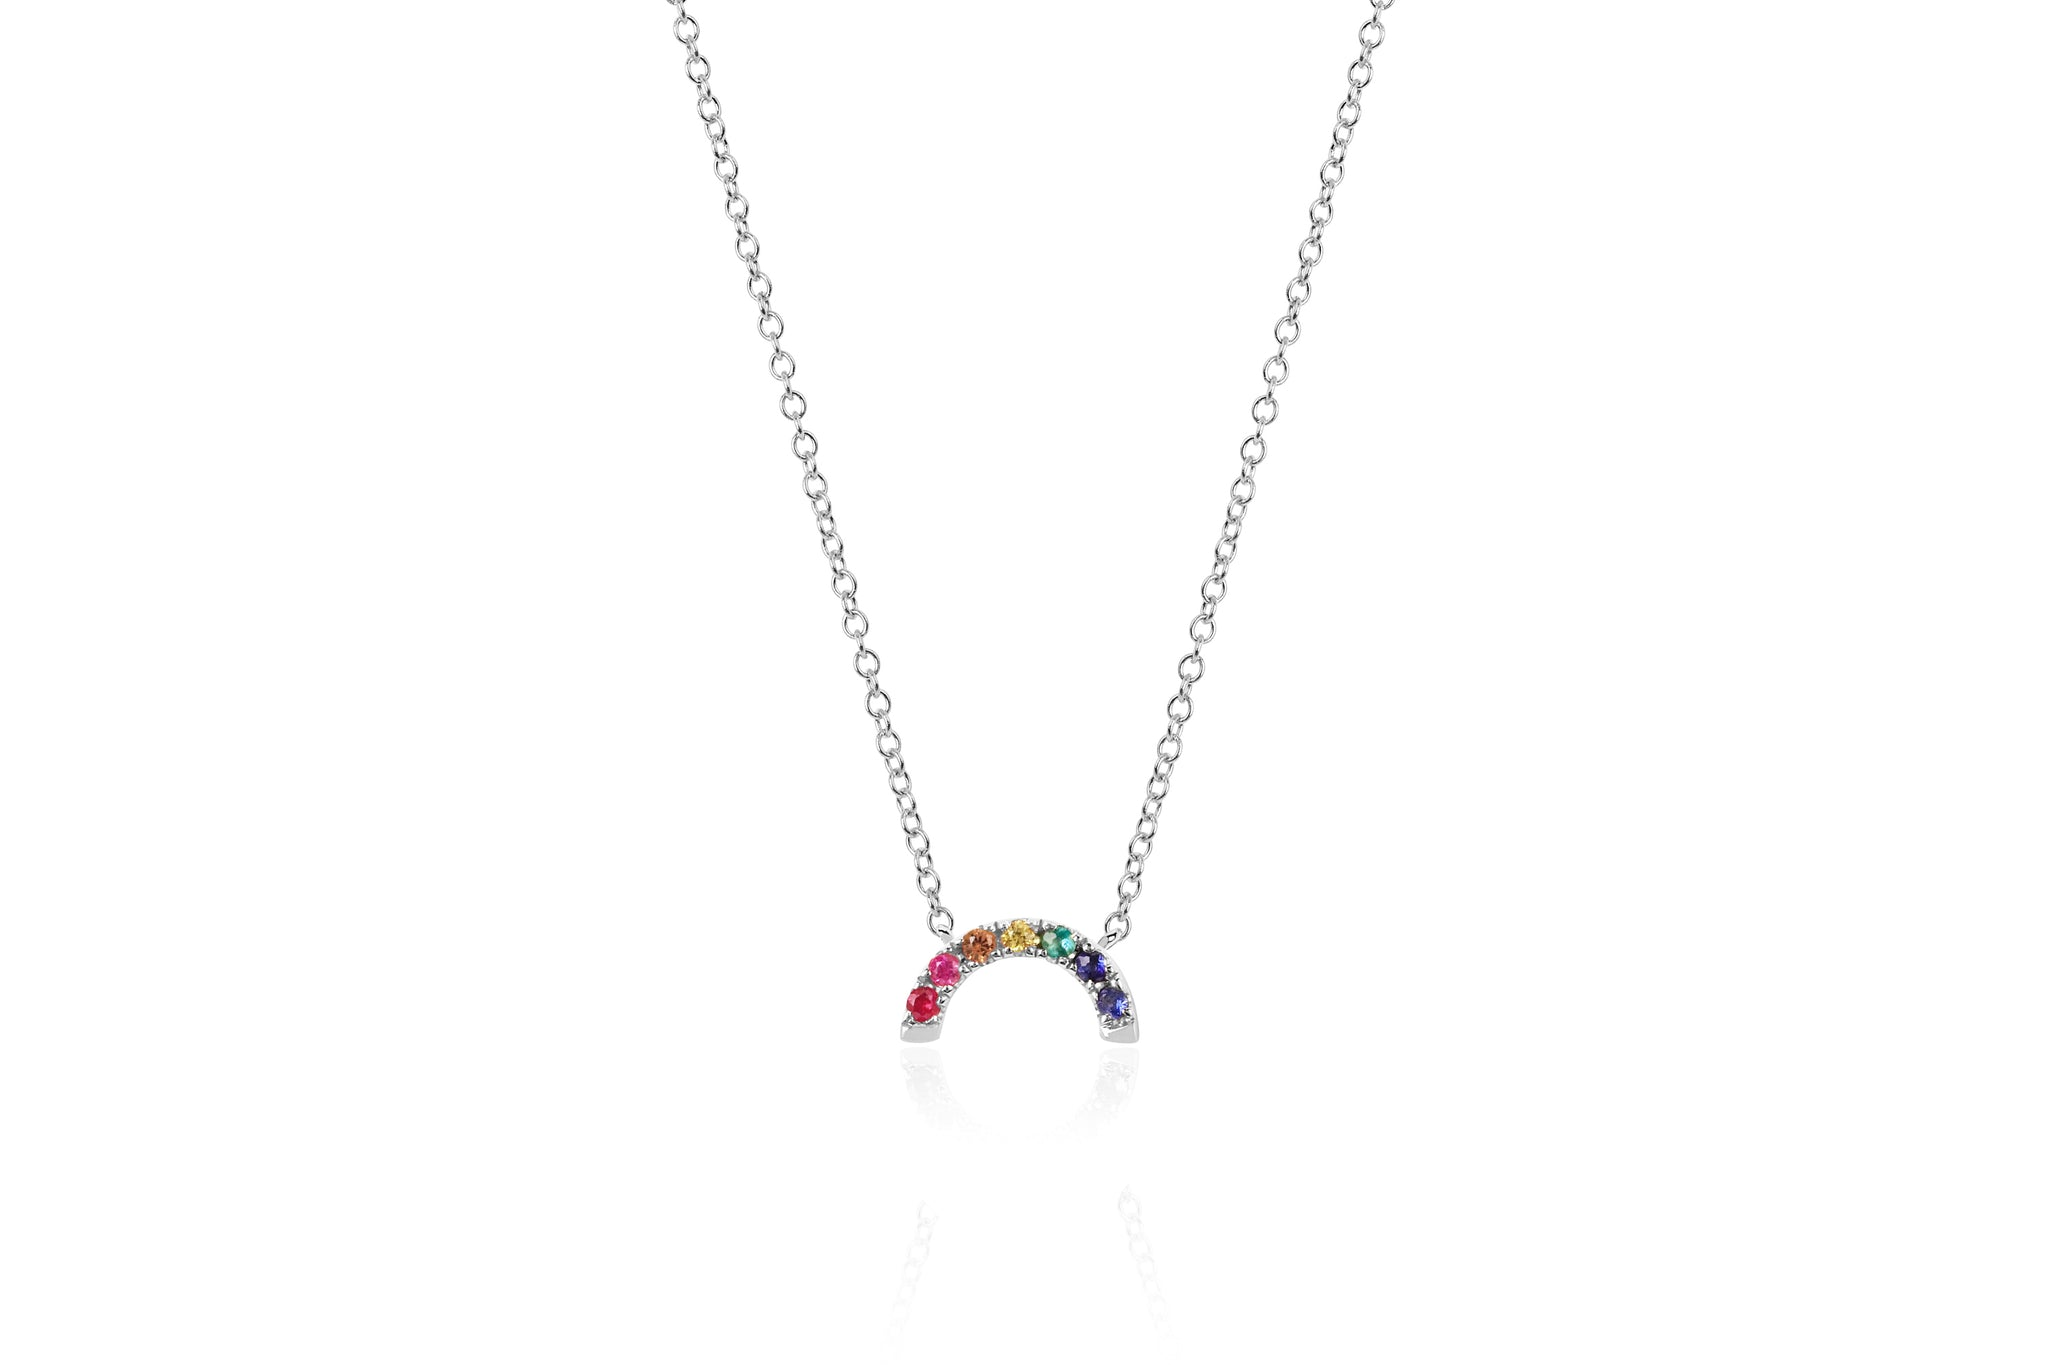 heunis fine stones and lightning necklace anton precious mian vand rainbow product